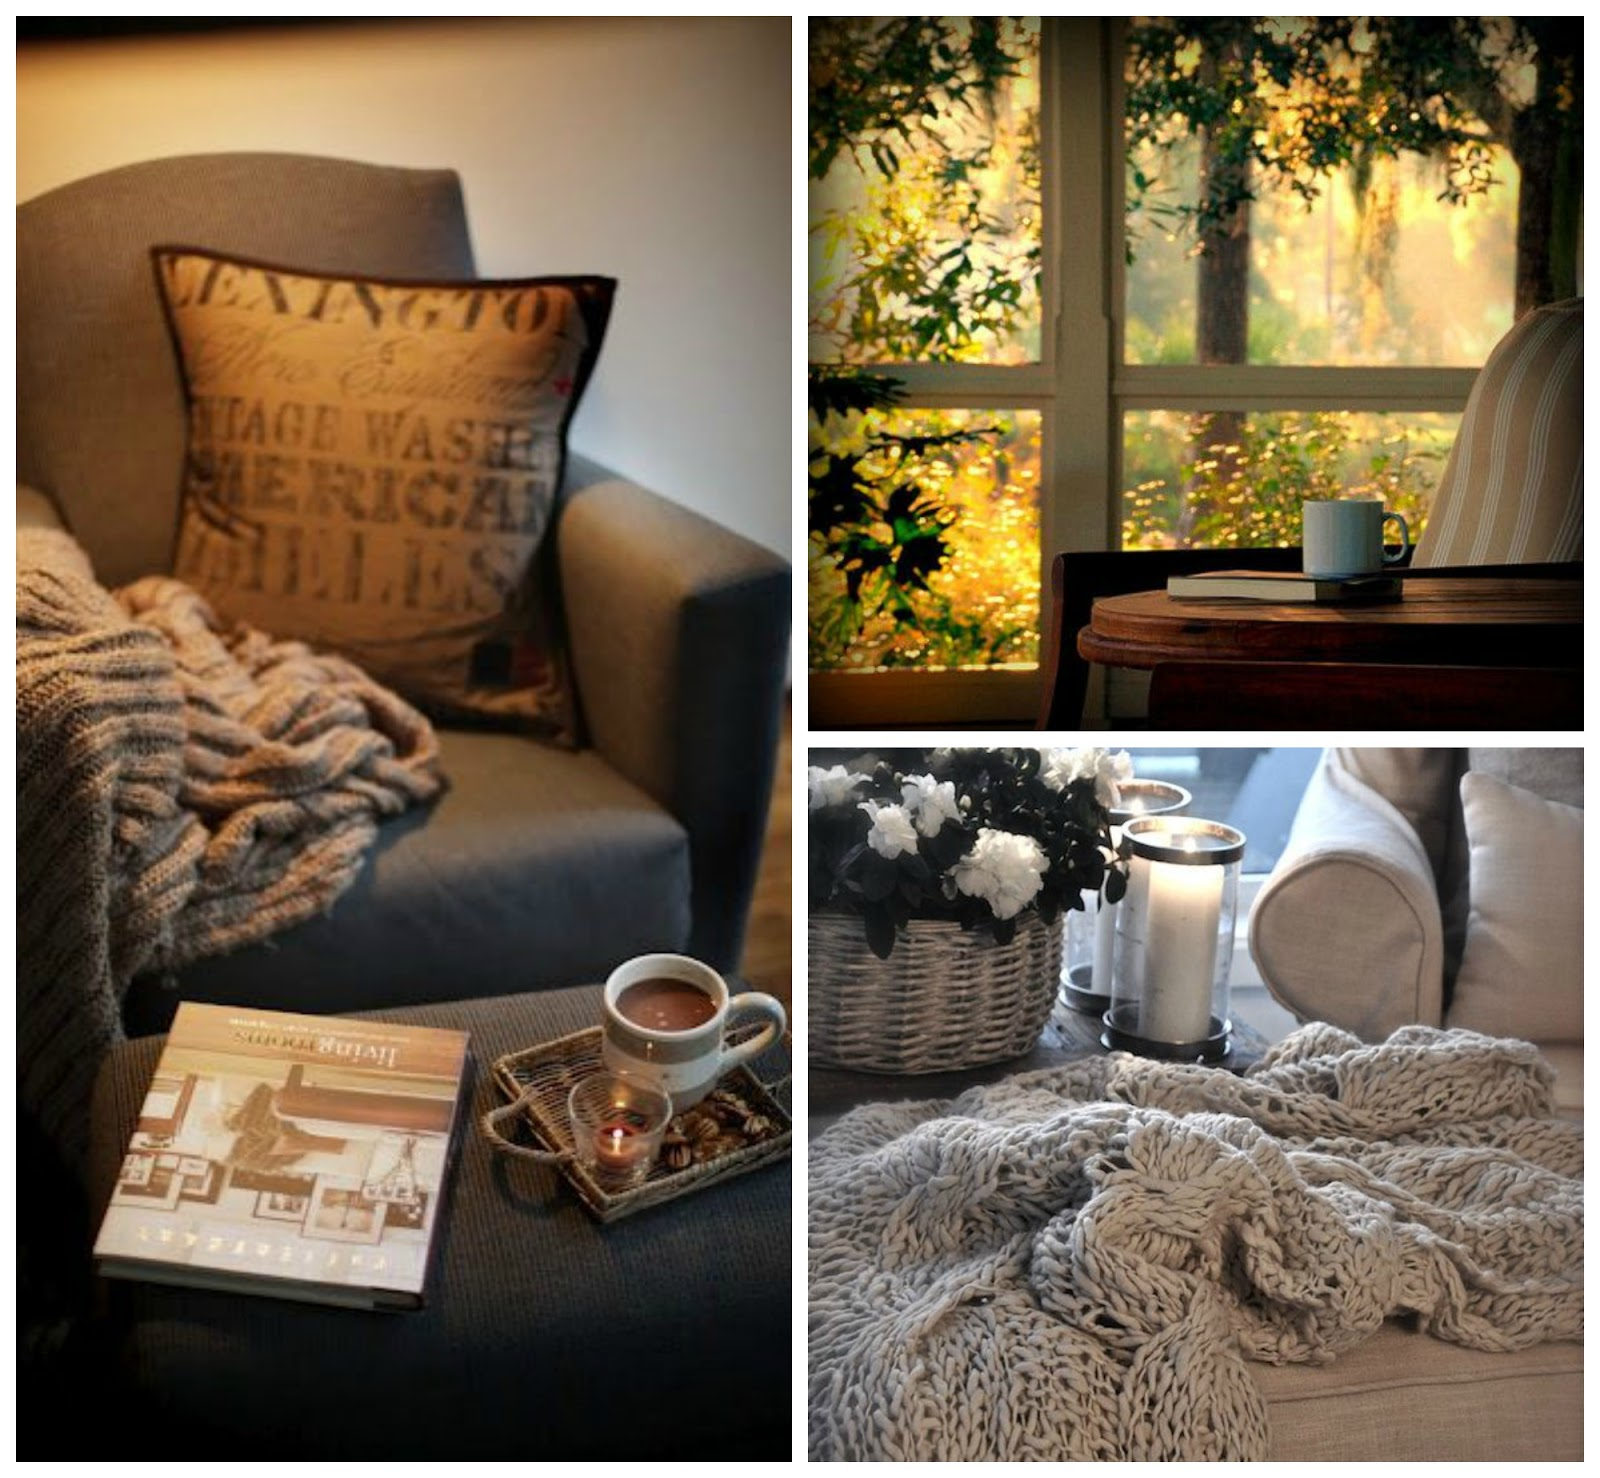 Cozy Home Decor Ideas To Be More Hygge: Part 2: How To Create A Cosy Home (Hygge